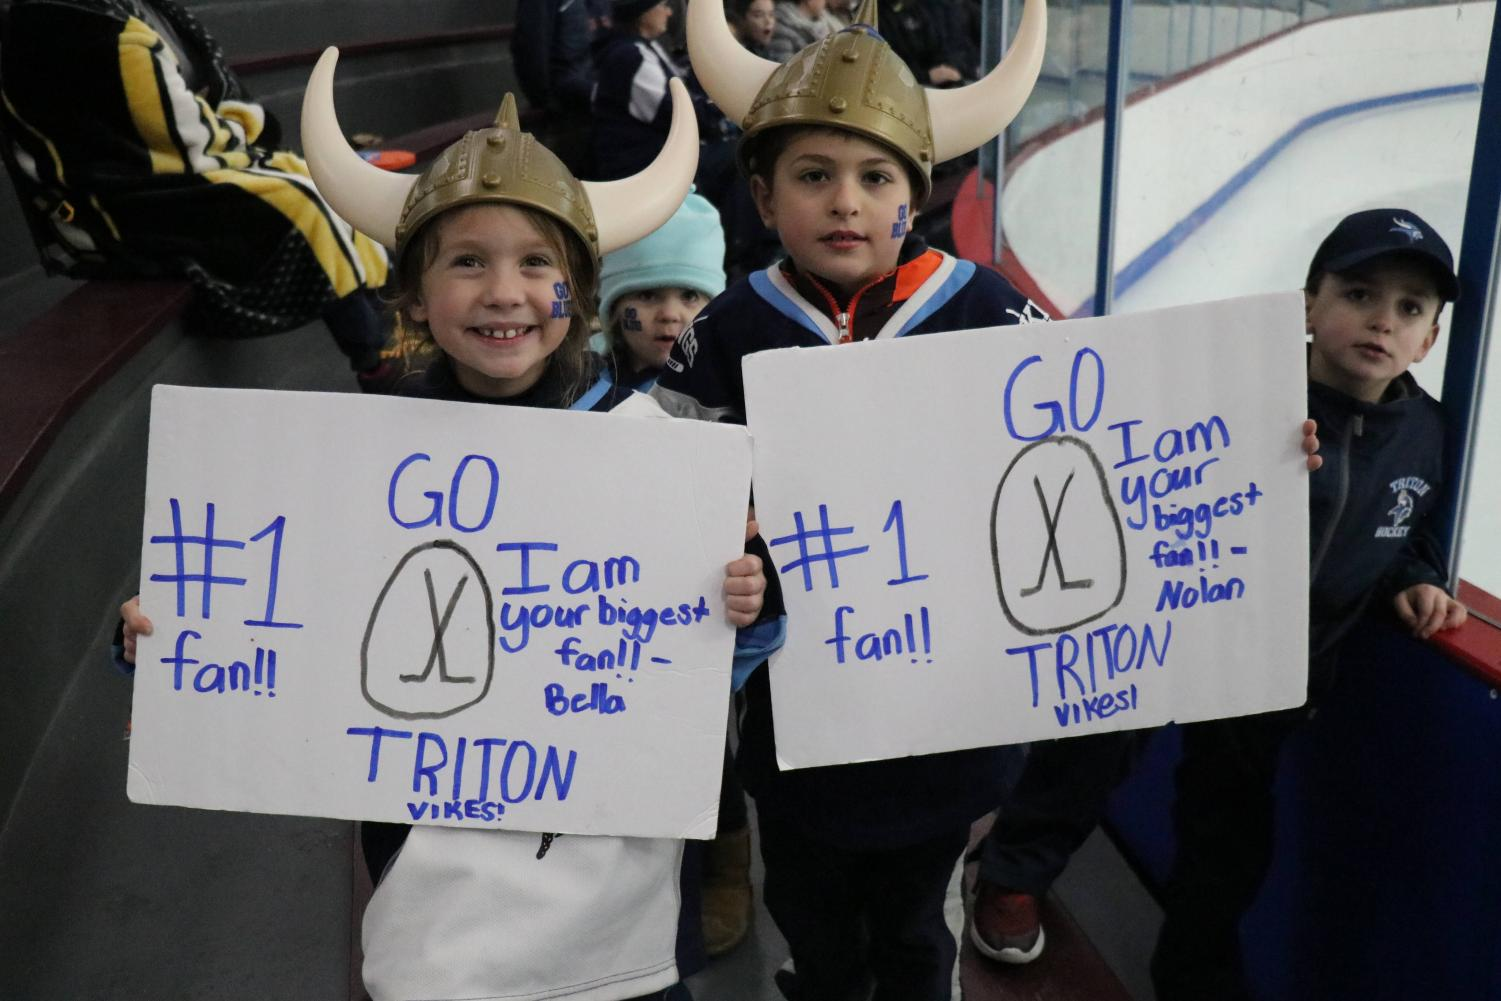 A+pair+of+young+Vikings+fans+made+custom+signs+for+their+team.